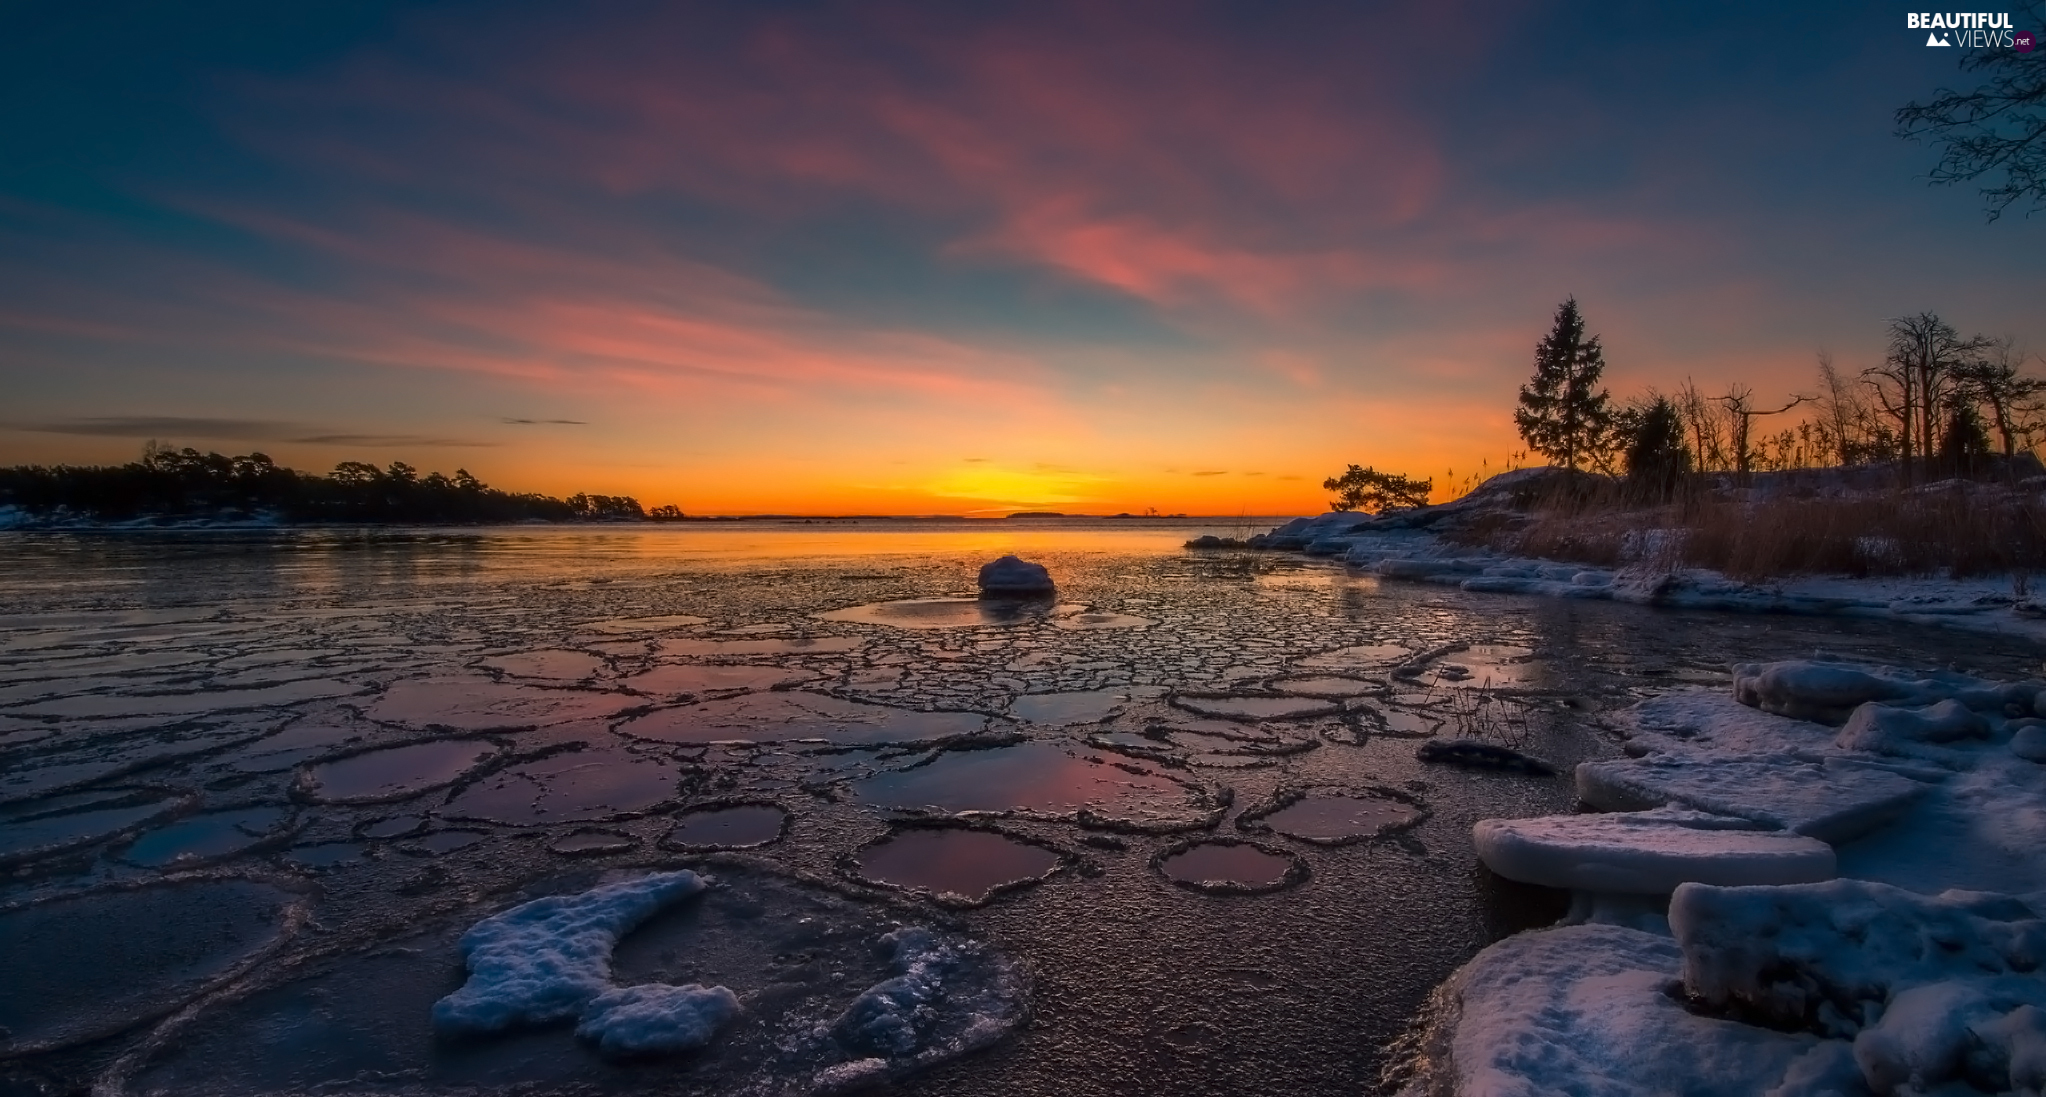 Finland, Kallahti Cape, winter, Gulf, viewes, Sunrise, Icecream, trees, Baltic Sea